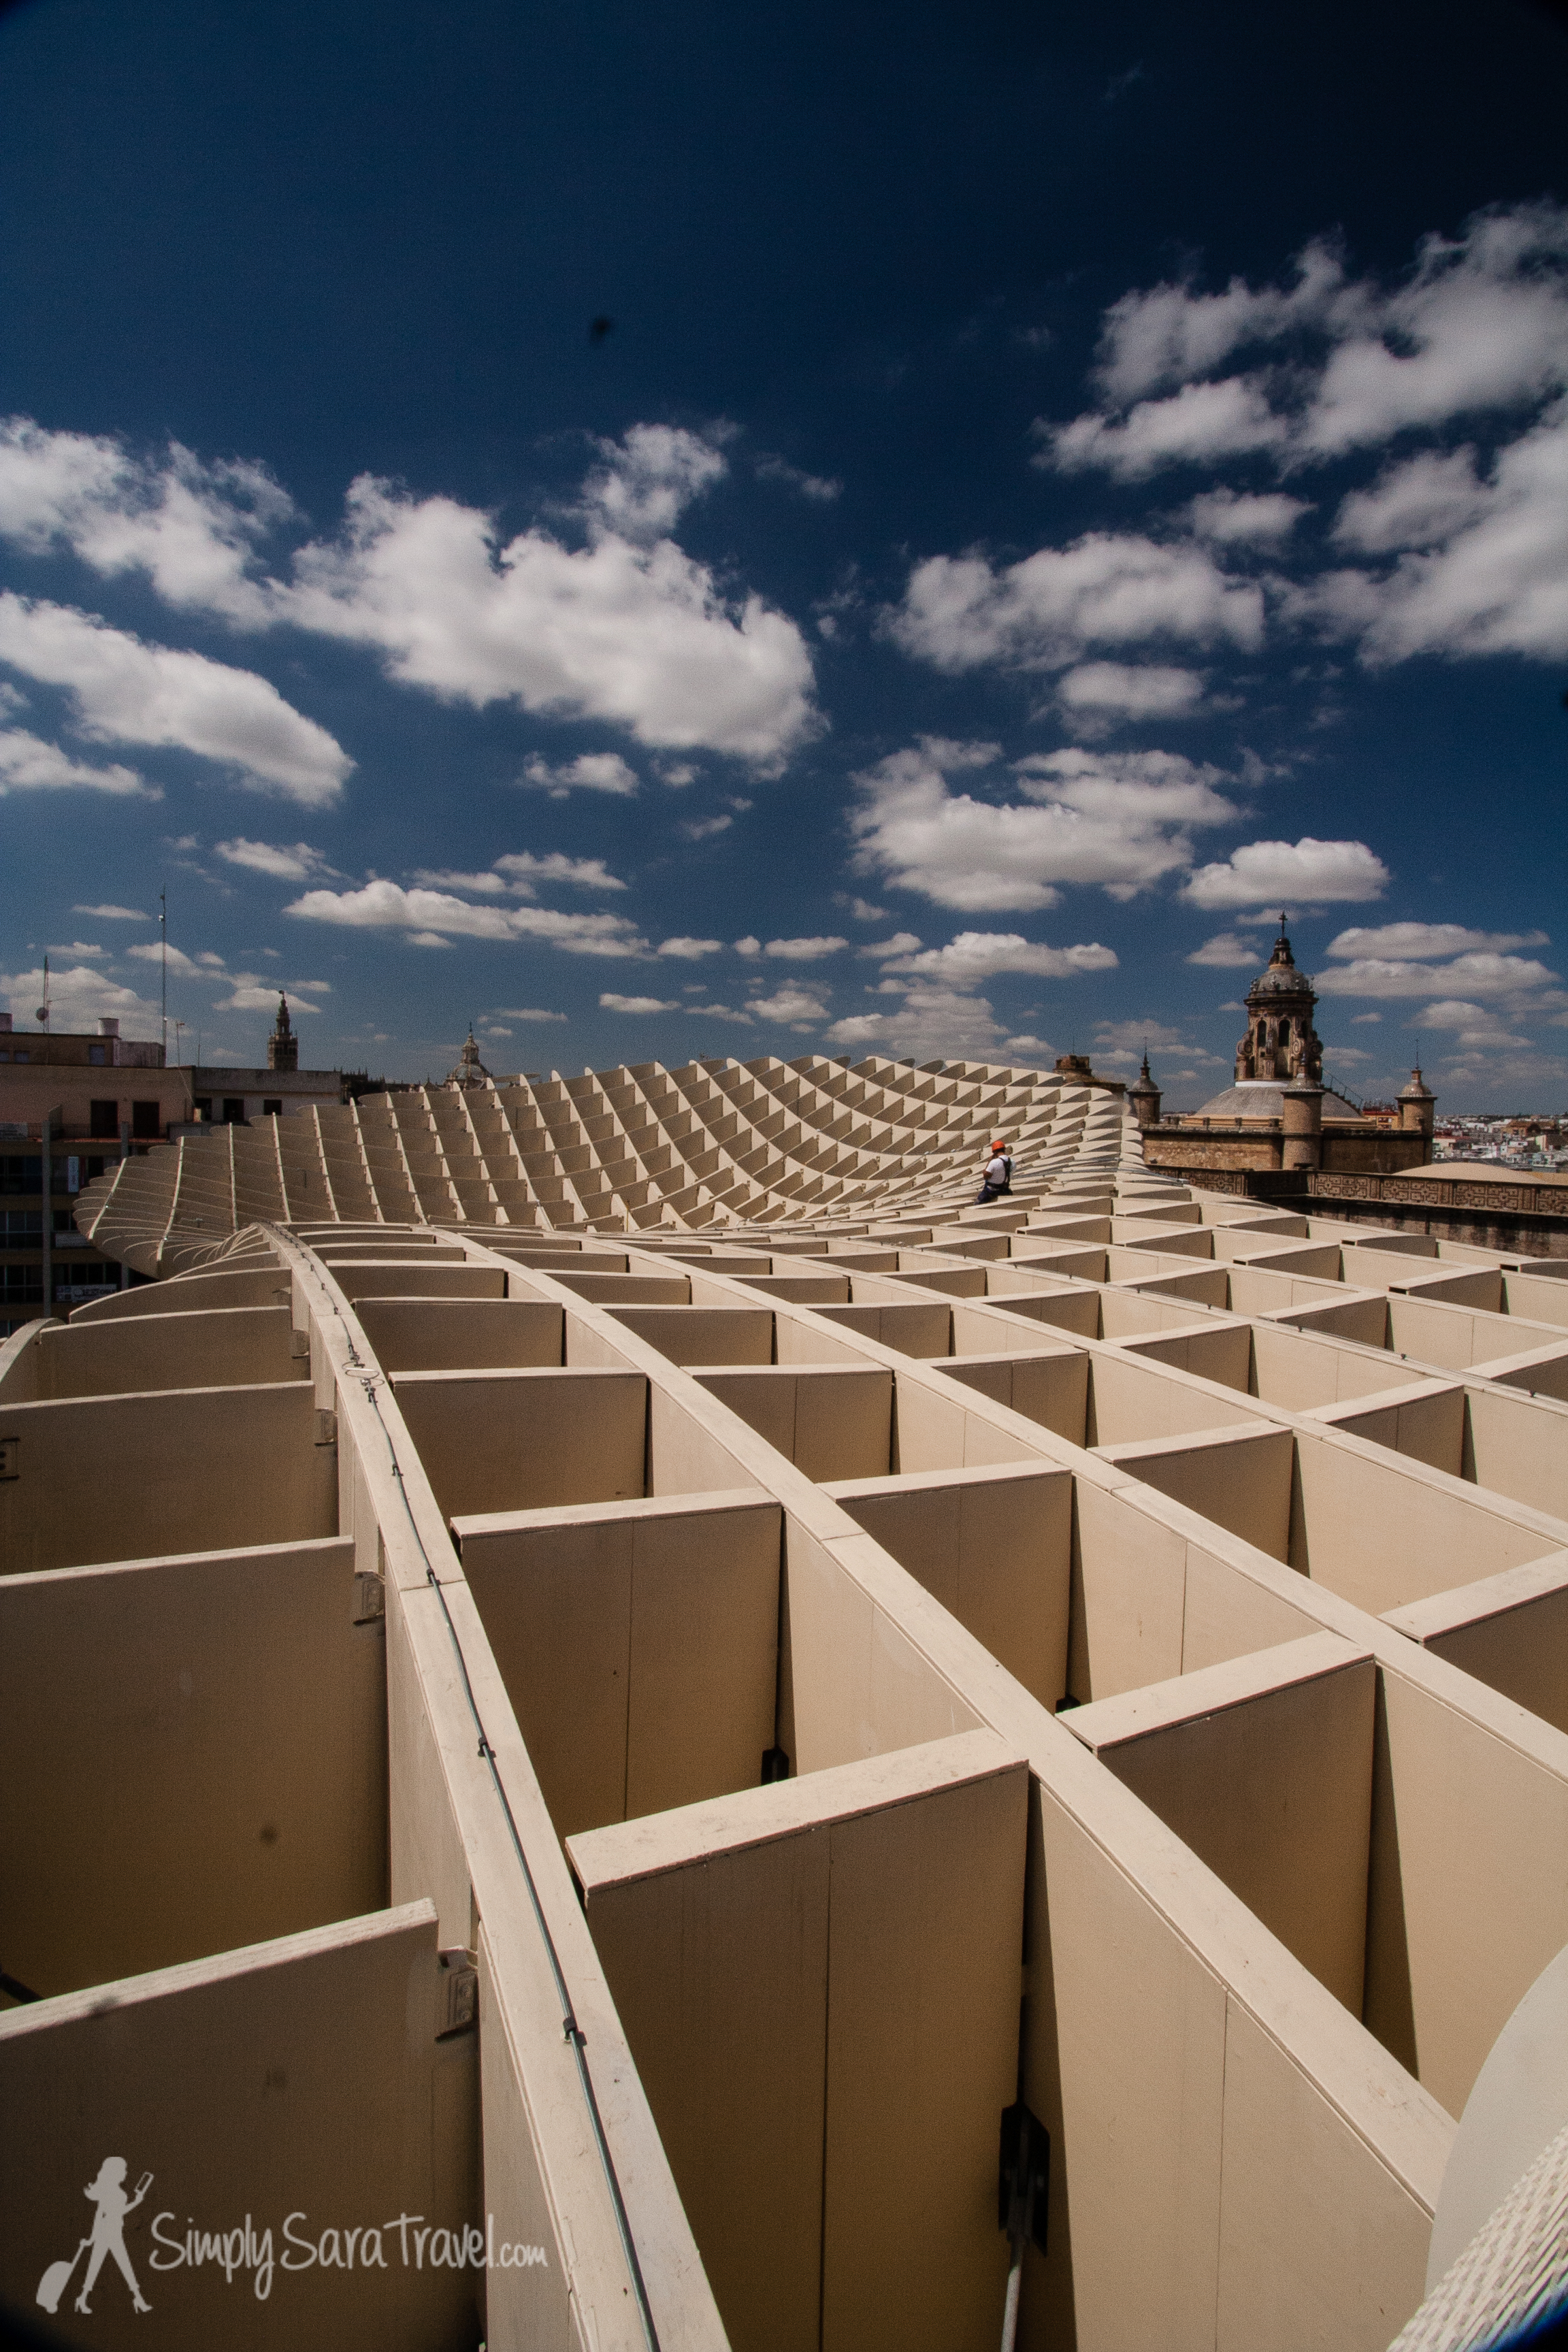 """The cool Metropol Parasol  in Sevilla, Spain that I refer to as """"the Waf"""" for its resemblance to a waffle (June 2013)"""